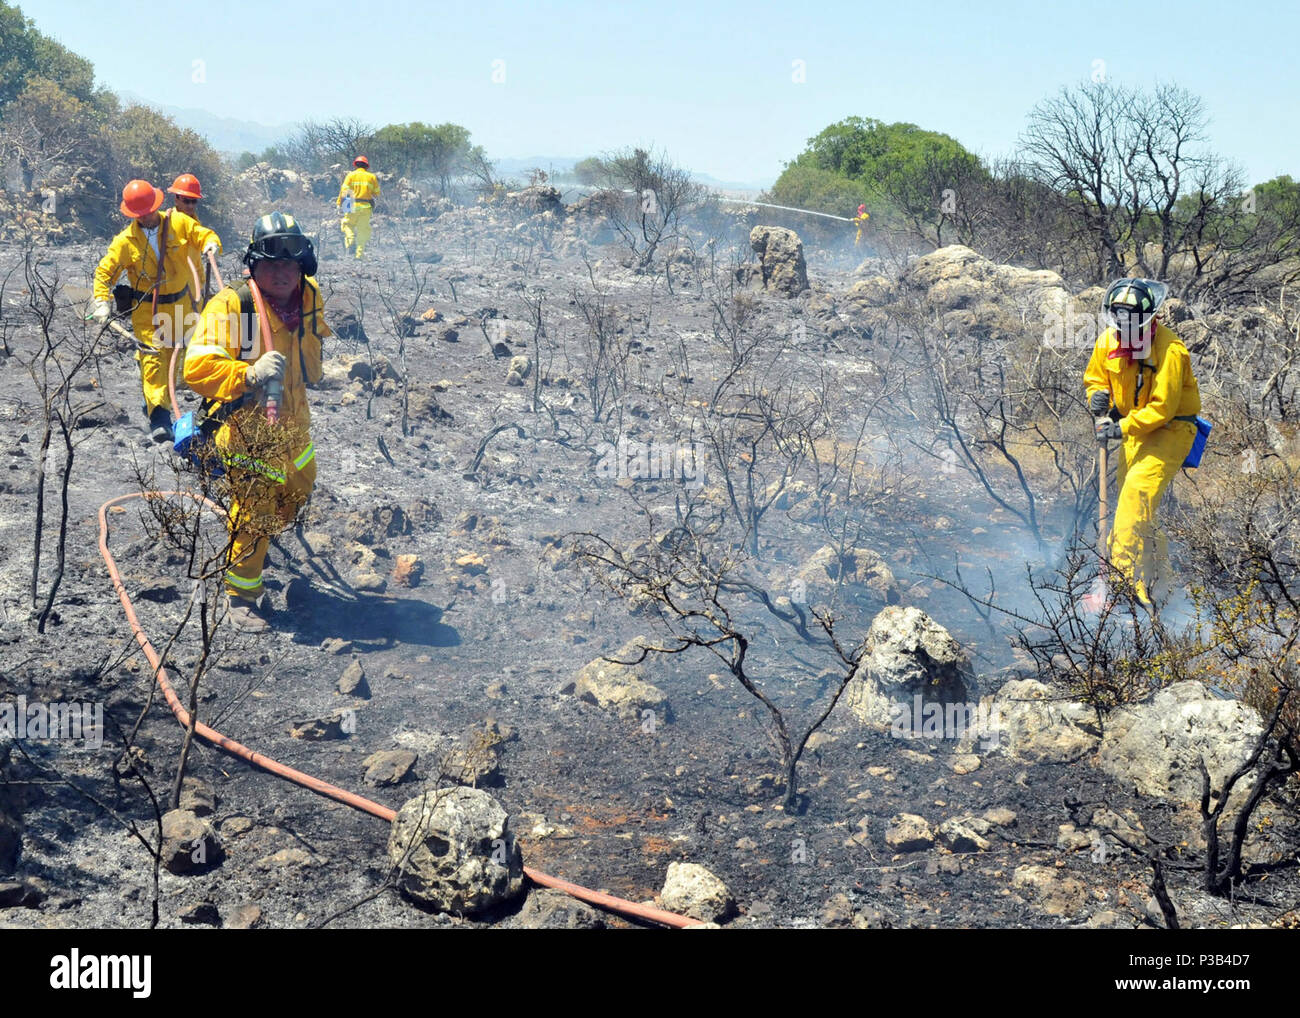 firefighters from Naval Support Activity Souda Bay extinguish the remnants of a brush fire near the village of Pazinos in western Crete, Greece, July 11, 2009. The firefighters are responding to a request for assistance from local agencies. Stock Photo